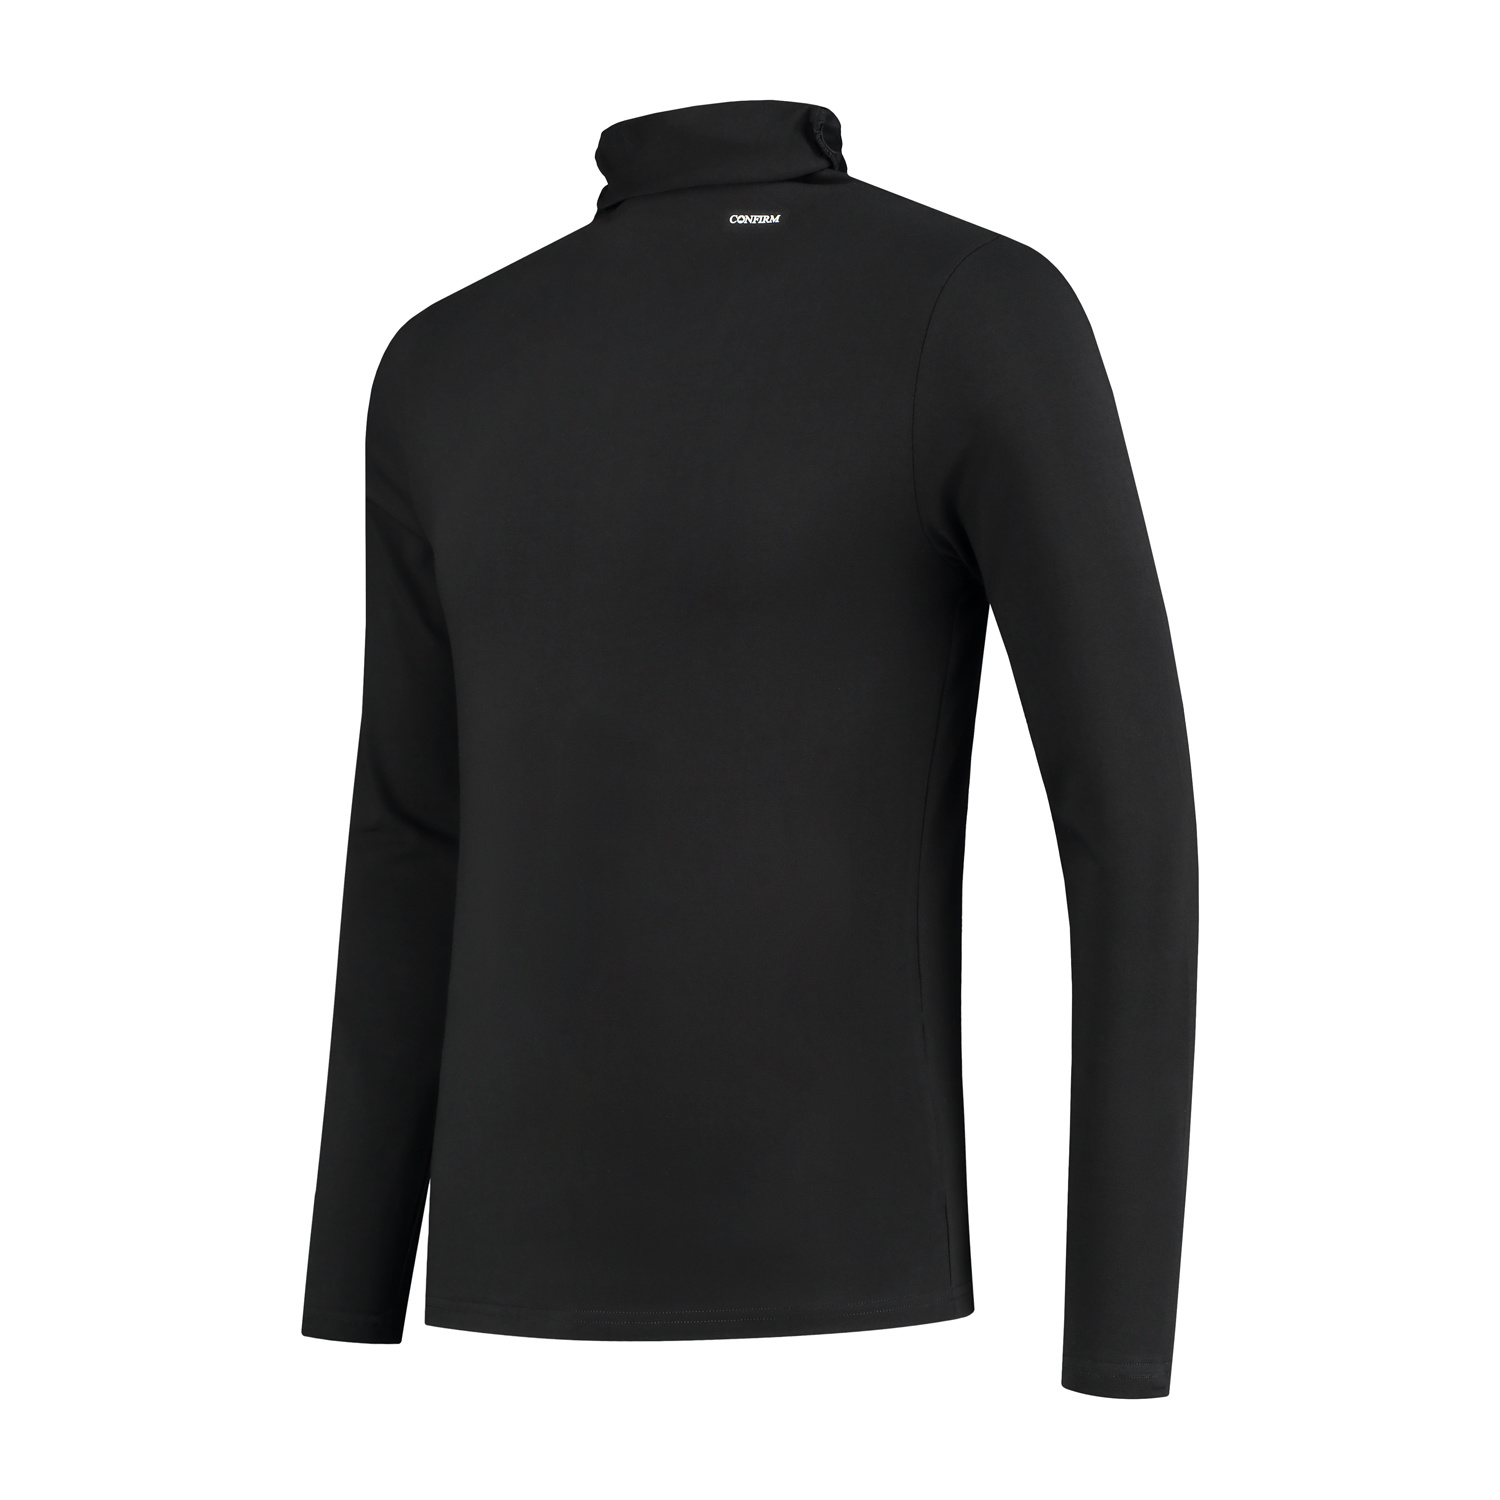 Confirm | Basic Turtleneck - Zwart-2